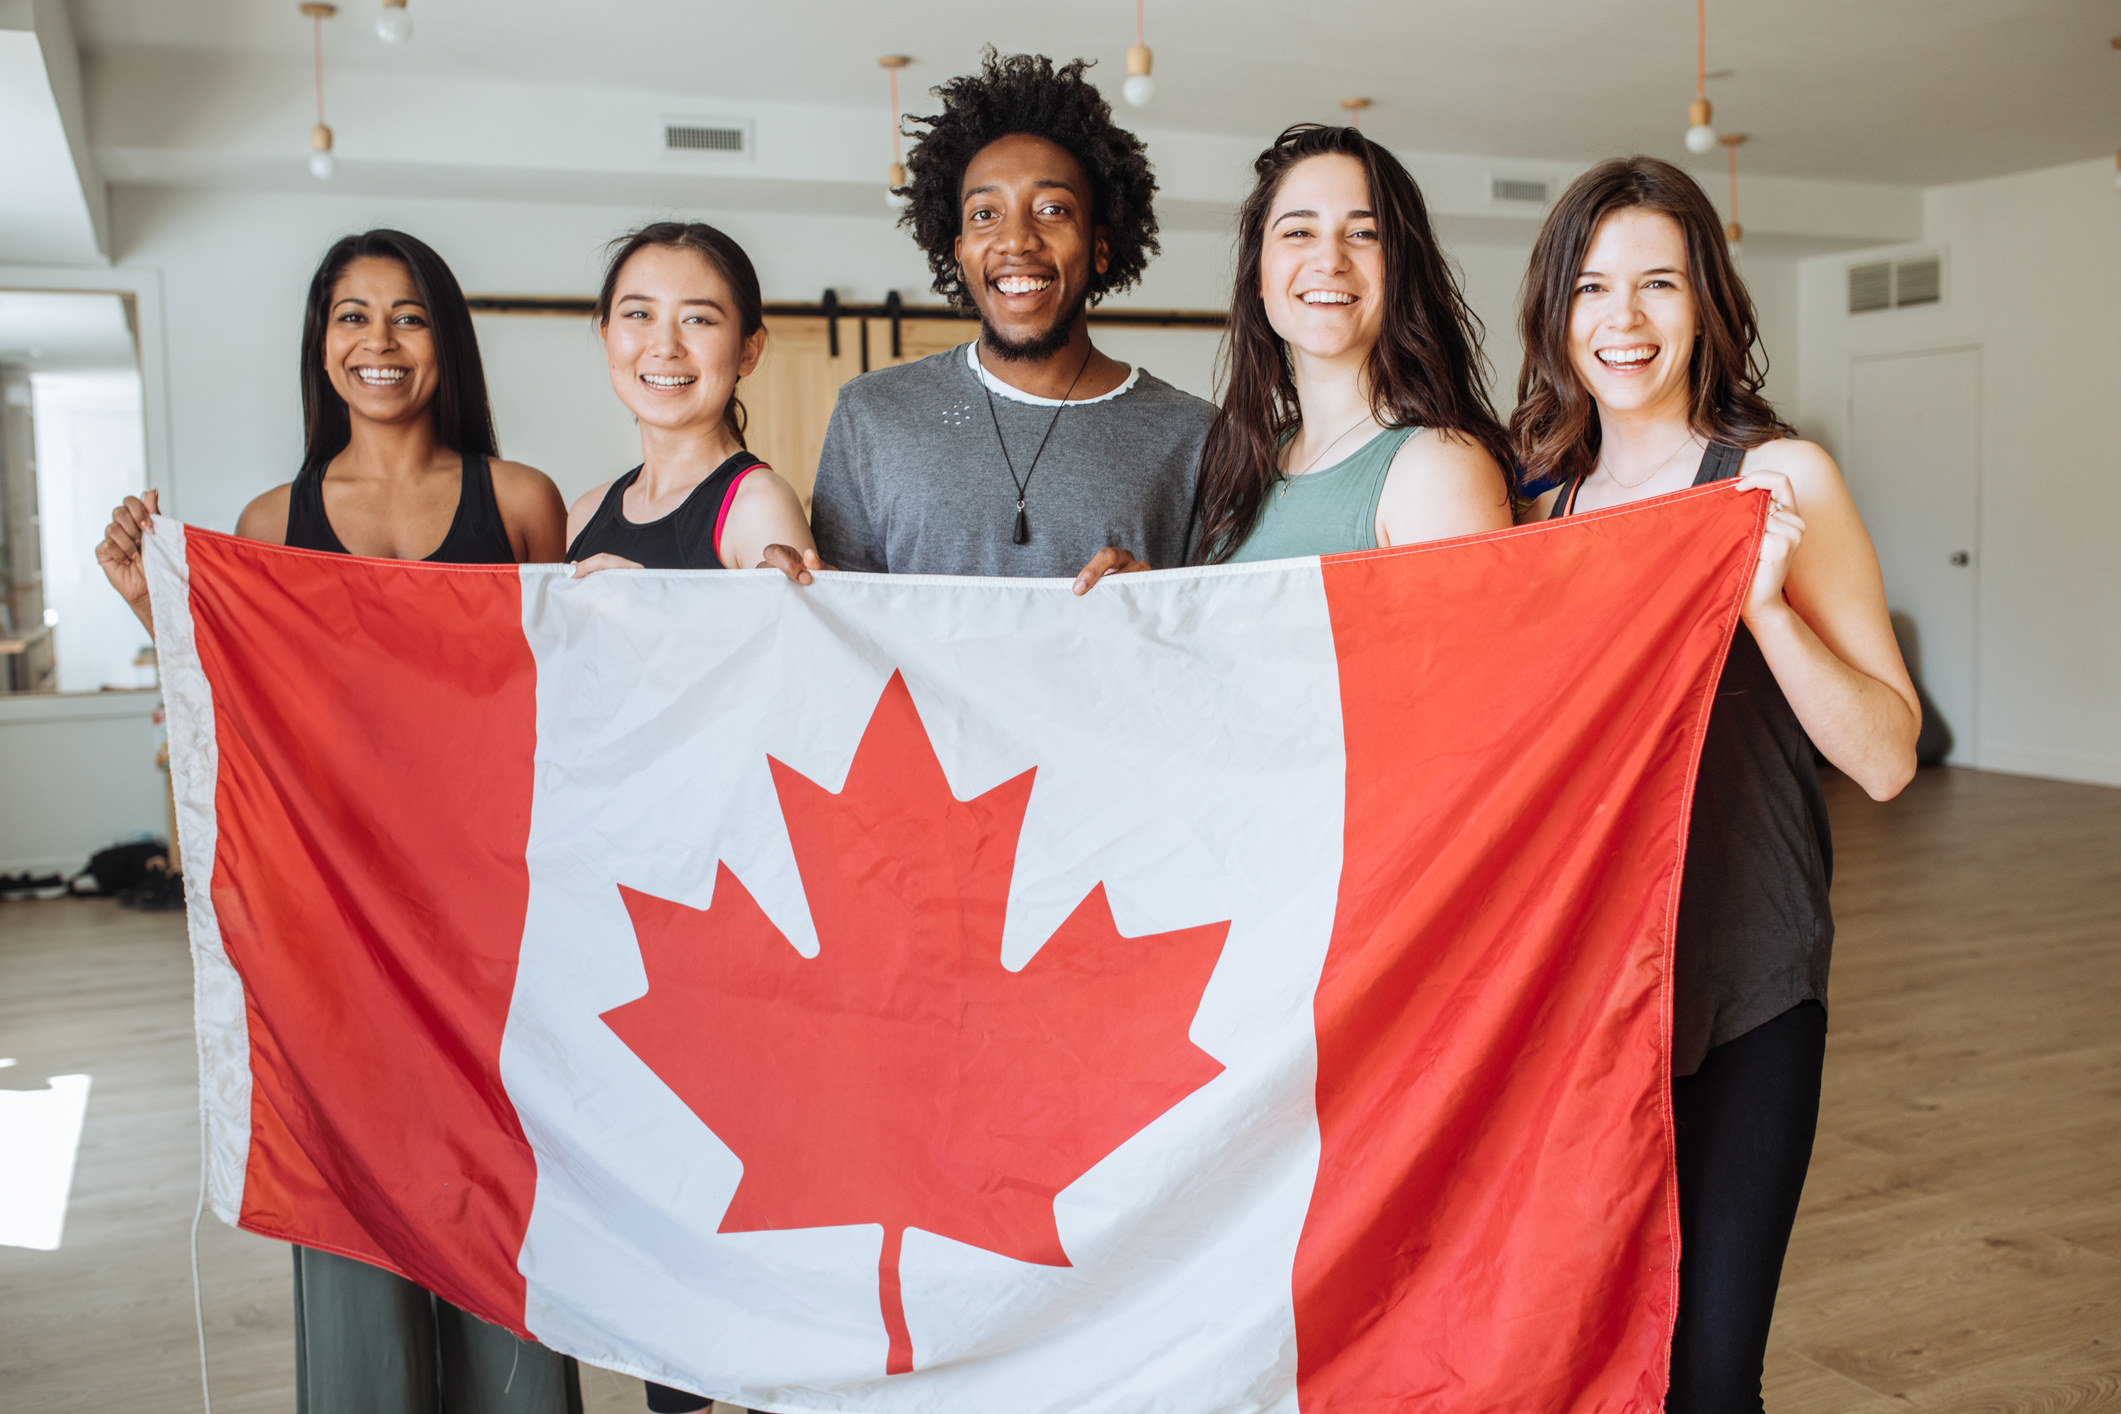 Five young people hold up a Canadian flag